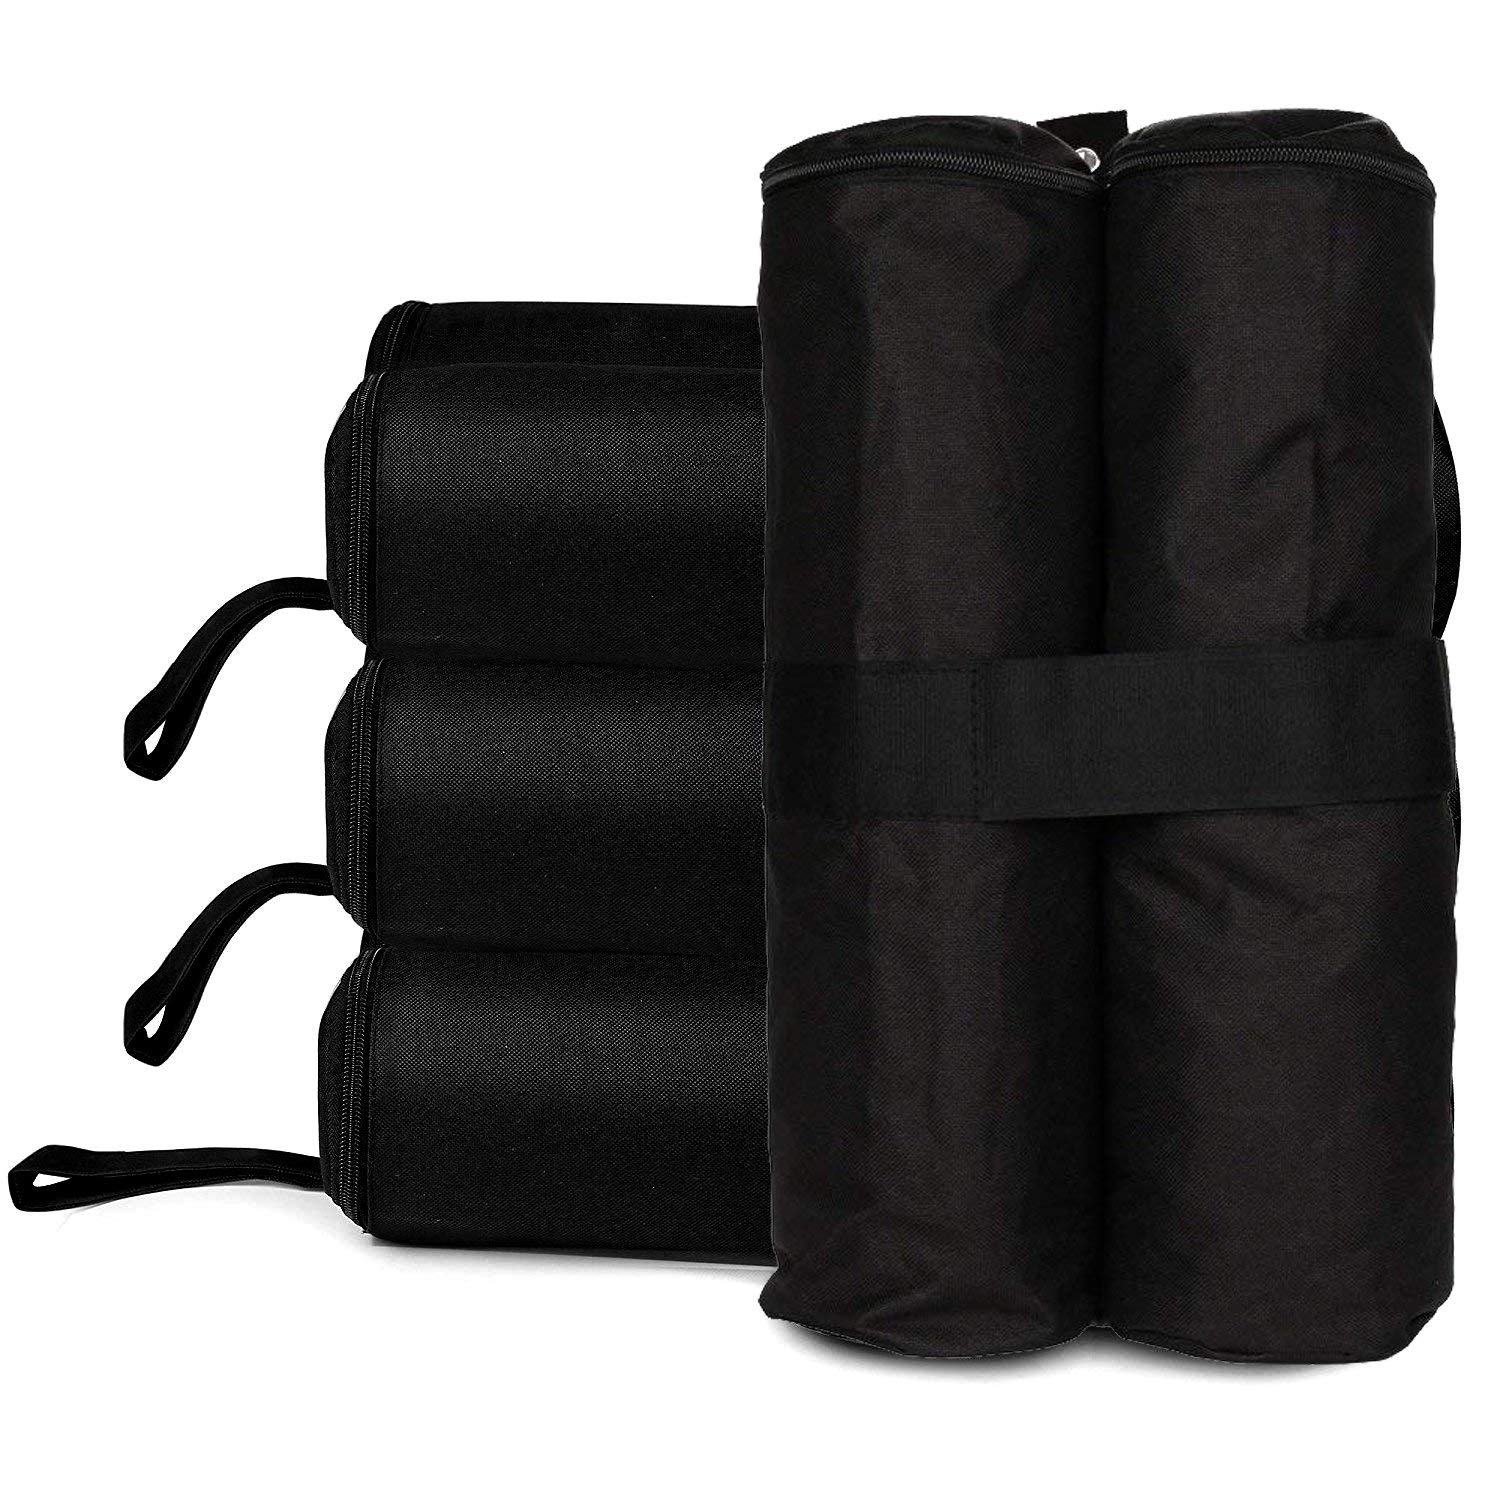 d607949d49 Get Quotations · RONGT 60 Lbs Canopy Tent Weight Bags